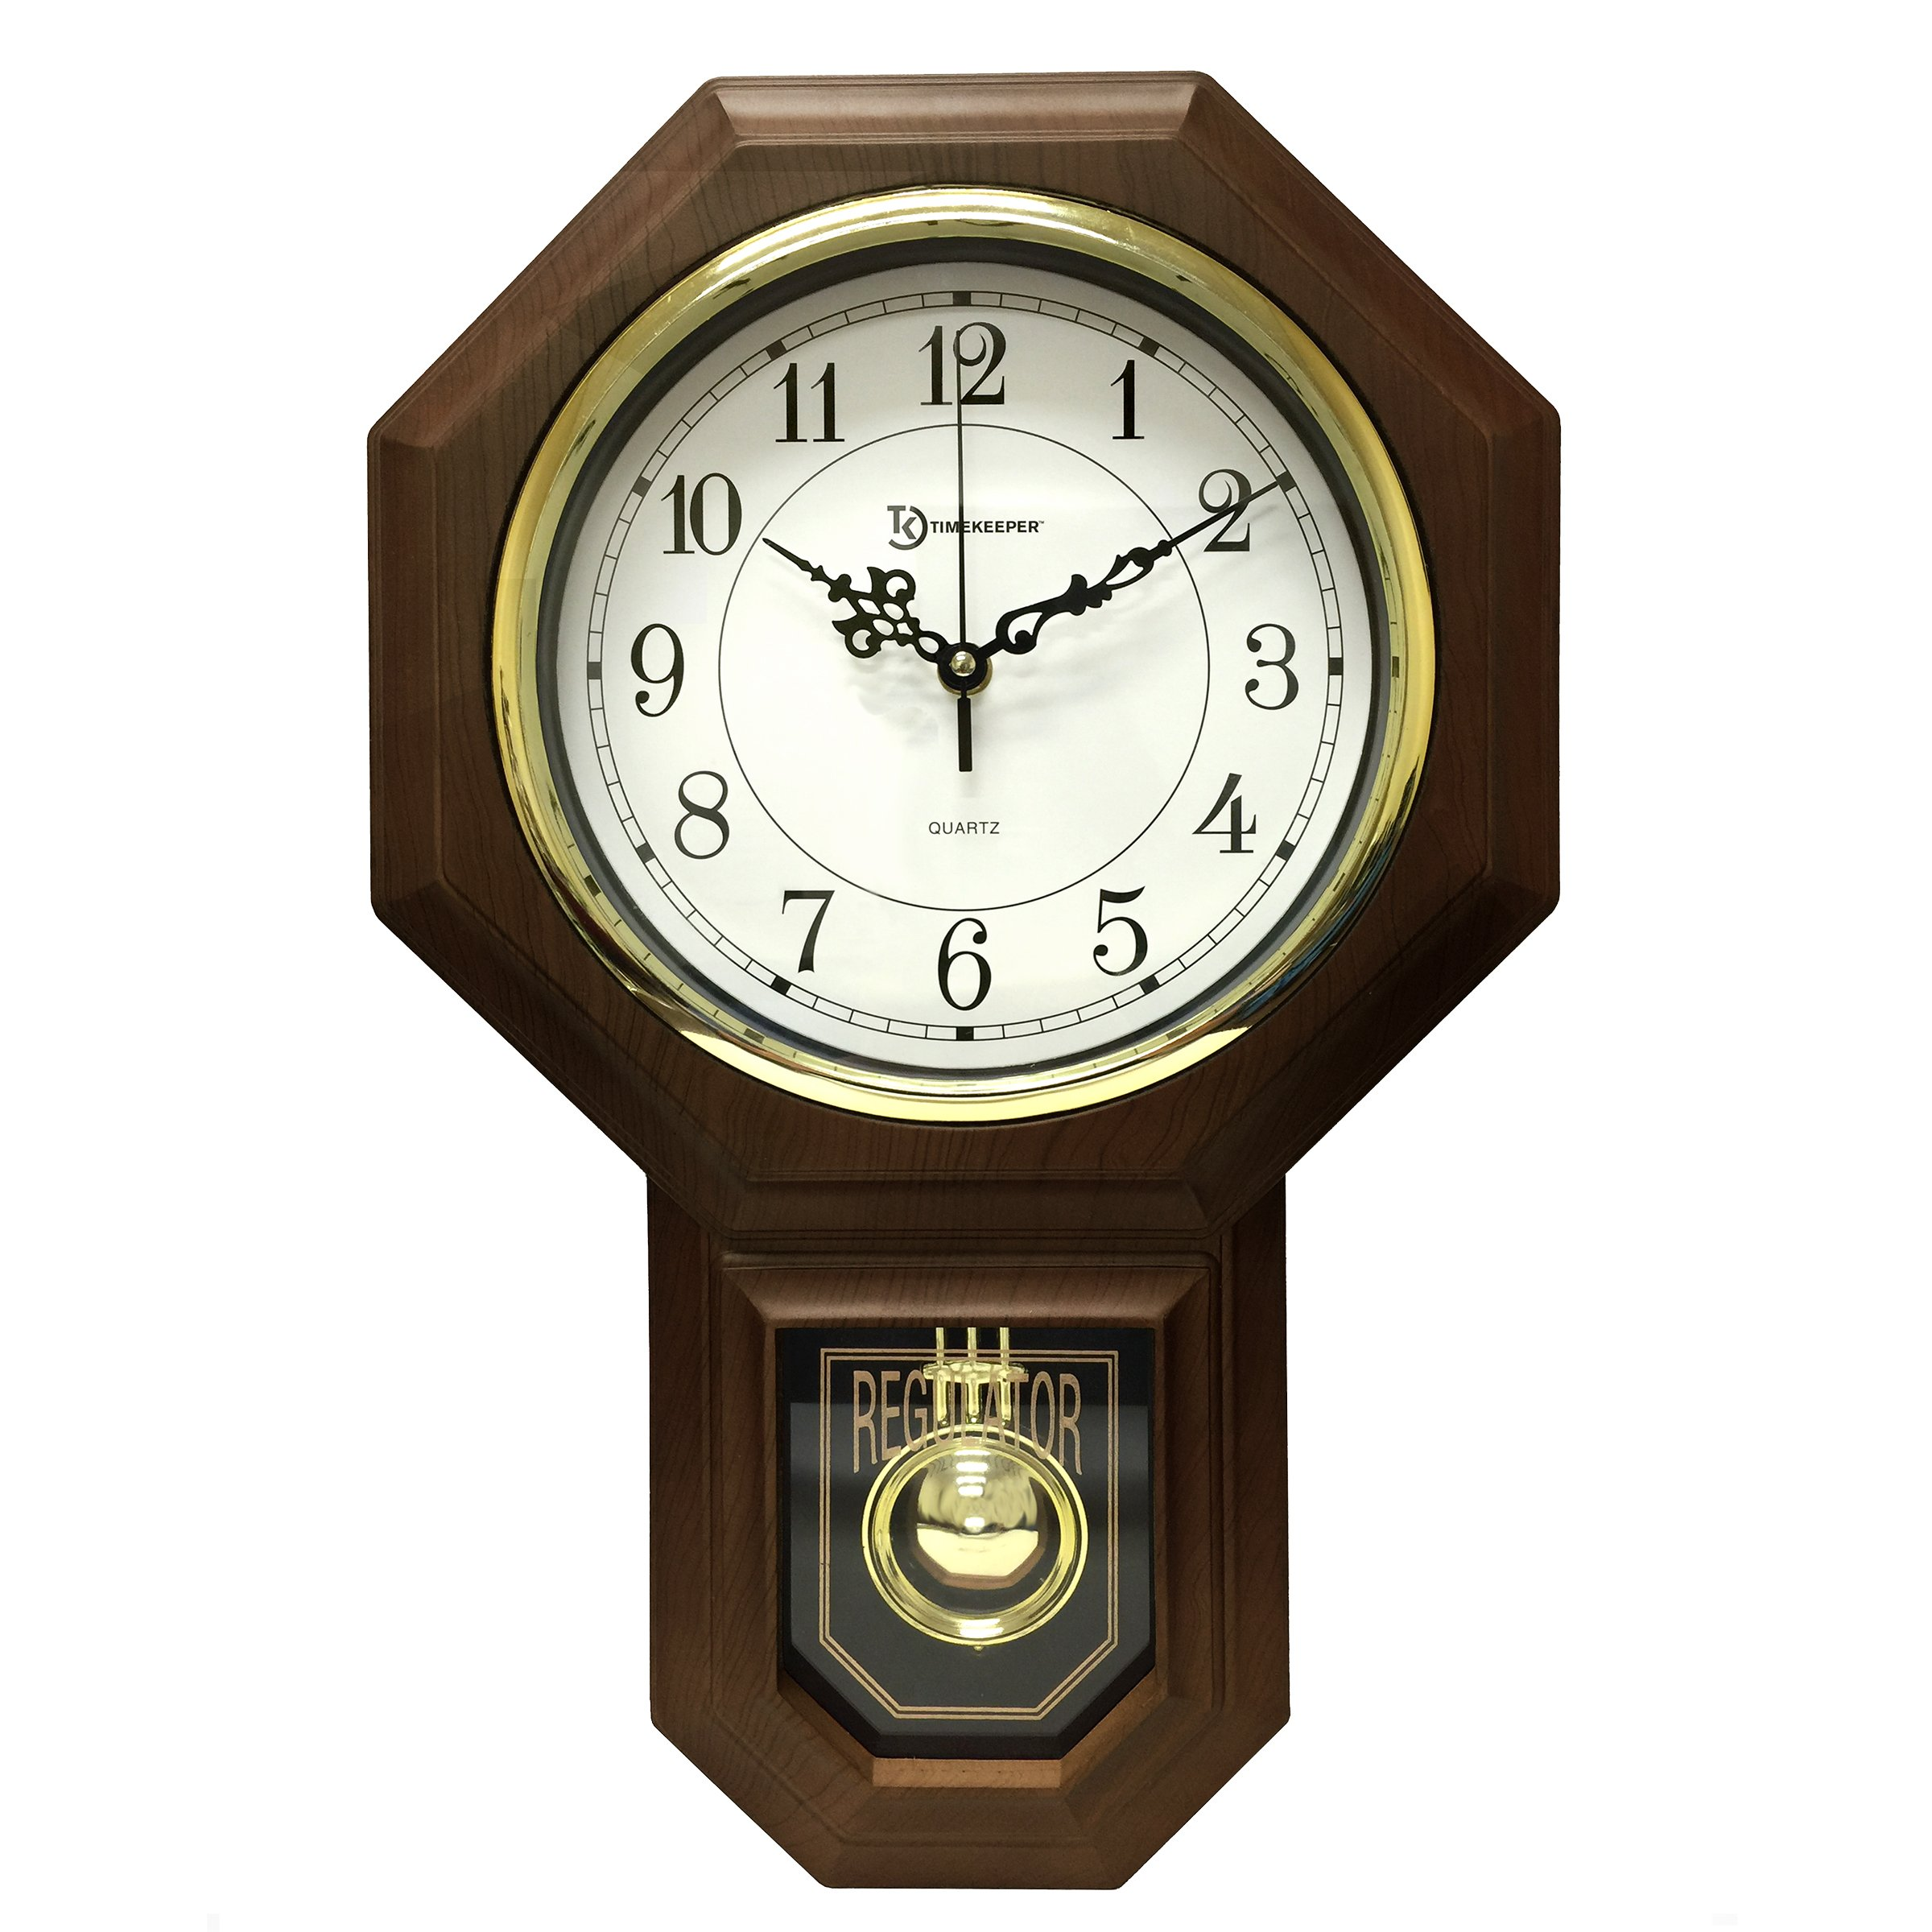 "Artistic Products 180WAGM Timekeeper 180wagm Essex[r] 18.75"" Modern Pendulum Wall Clock [faux Wood]"